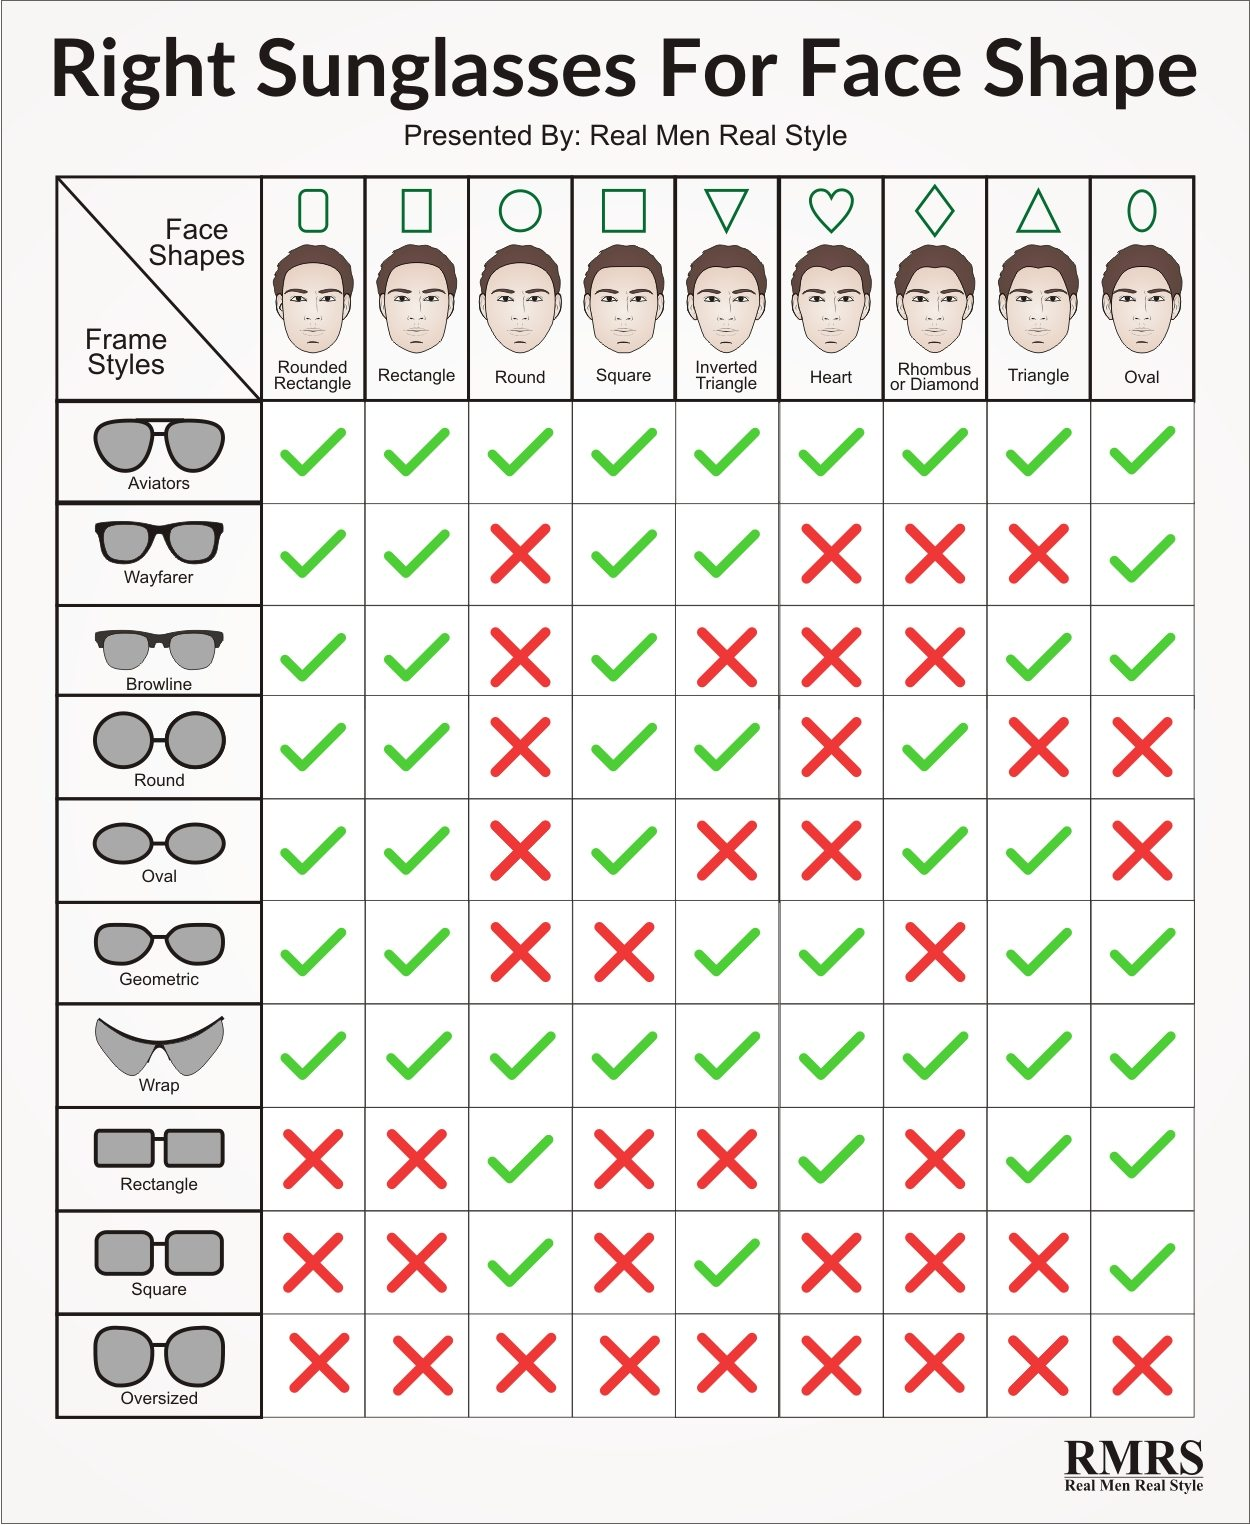 f899e06807 The Right Sunglasses For Your Face Shape Infographic